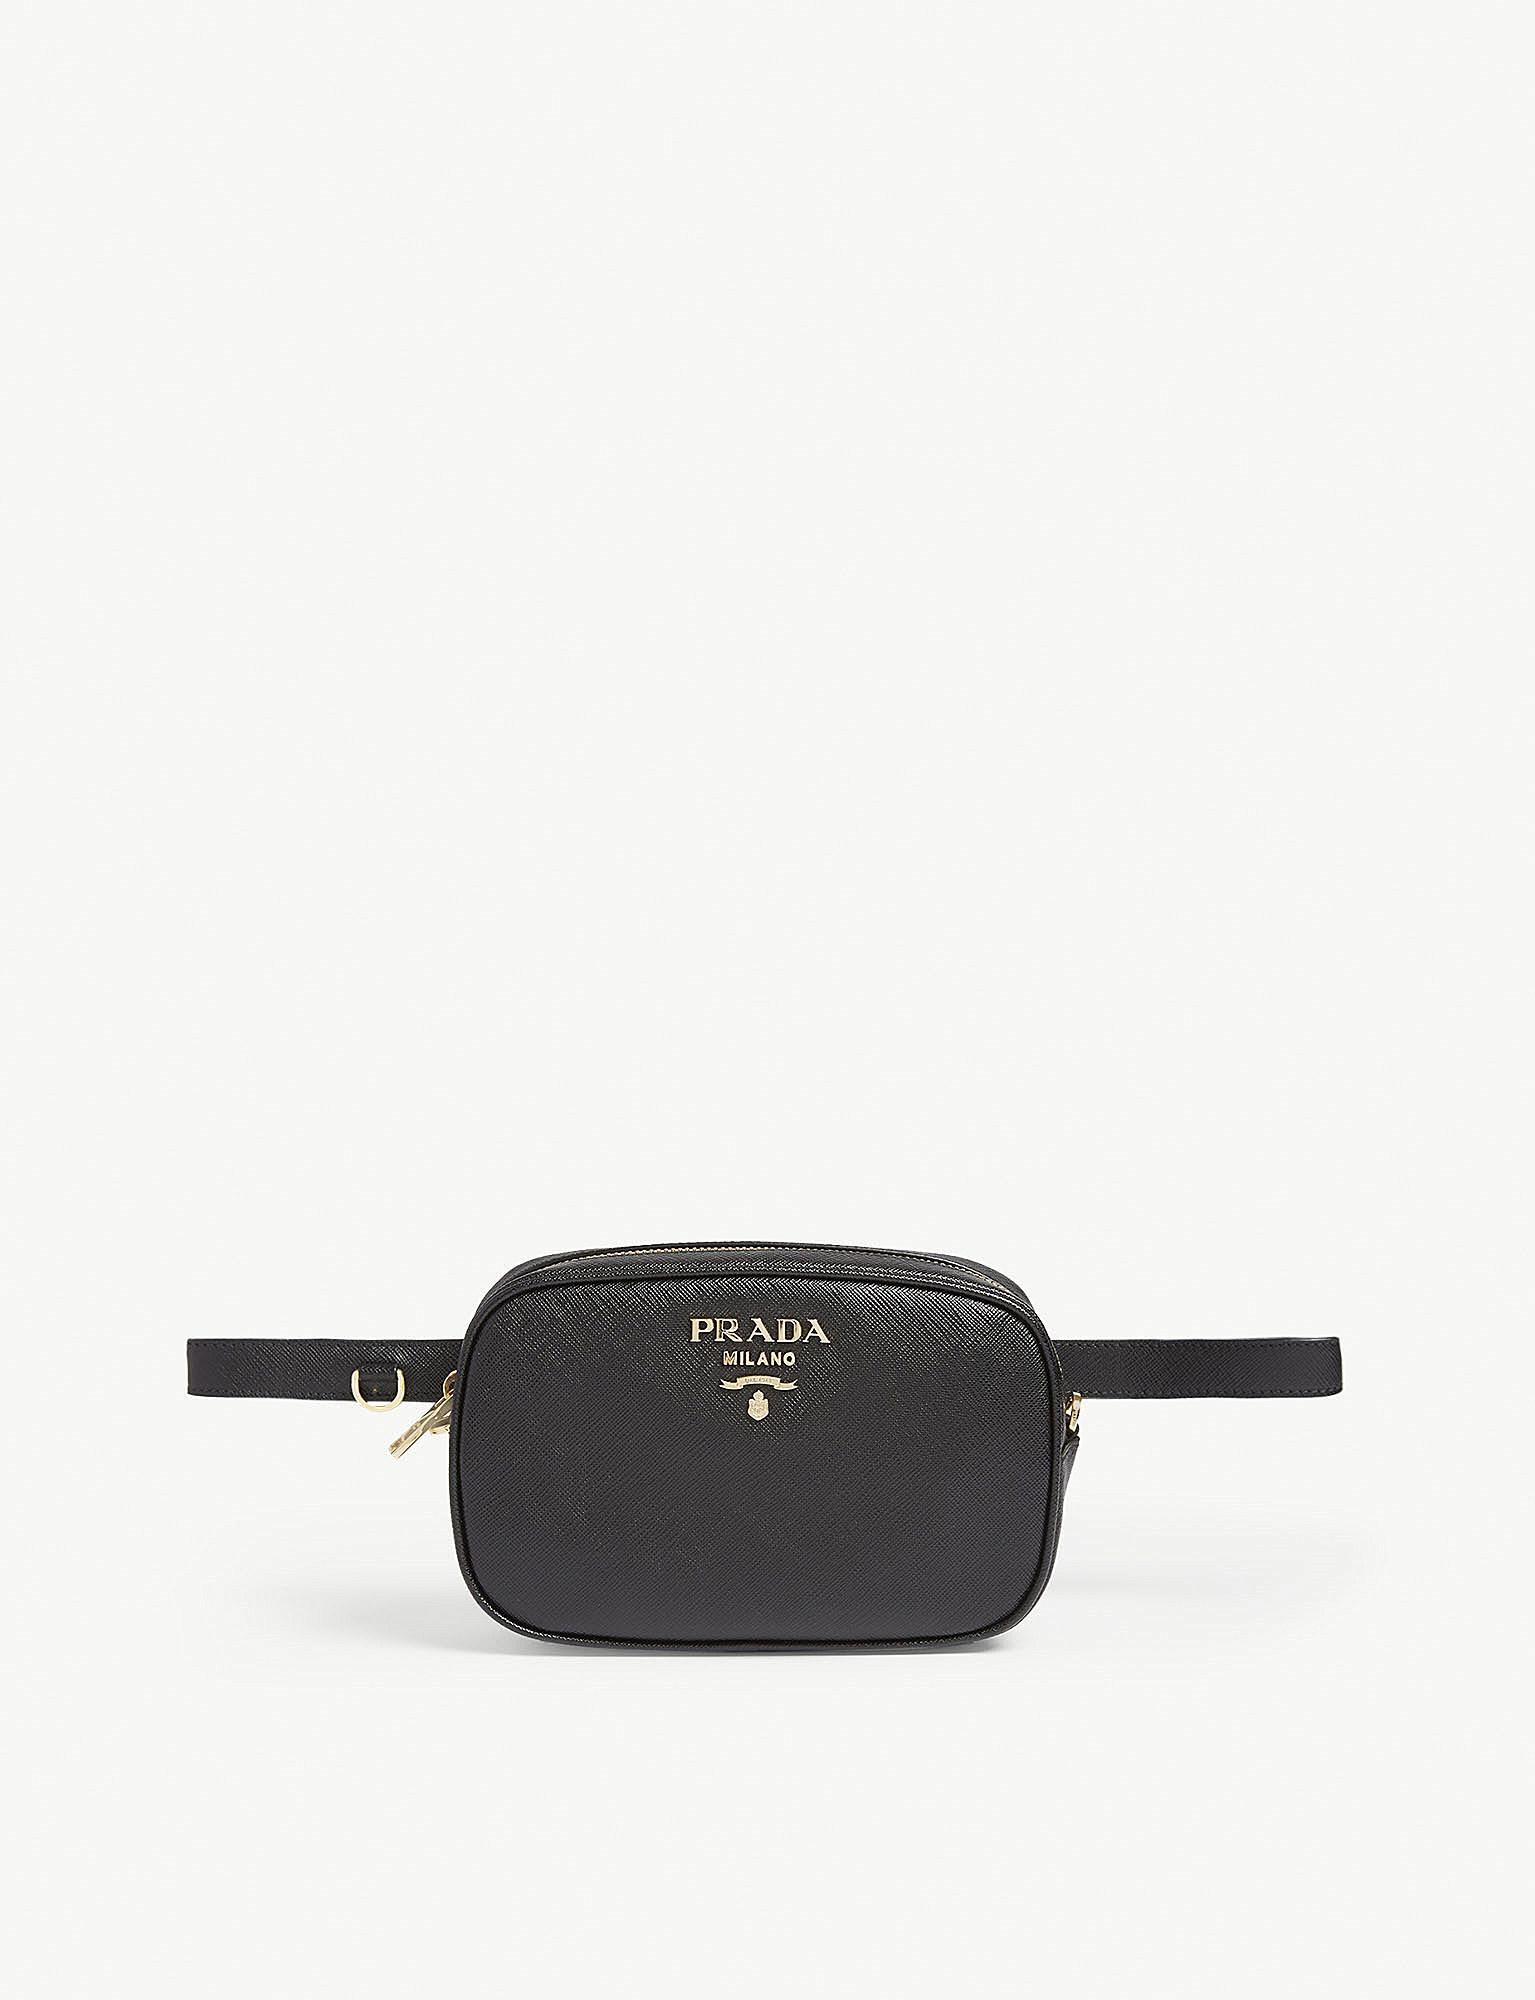 Lyst - Prada Core Saffiano Leather Bumbag in Black 5384d3daef775